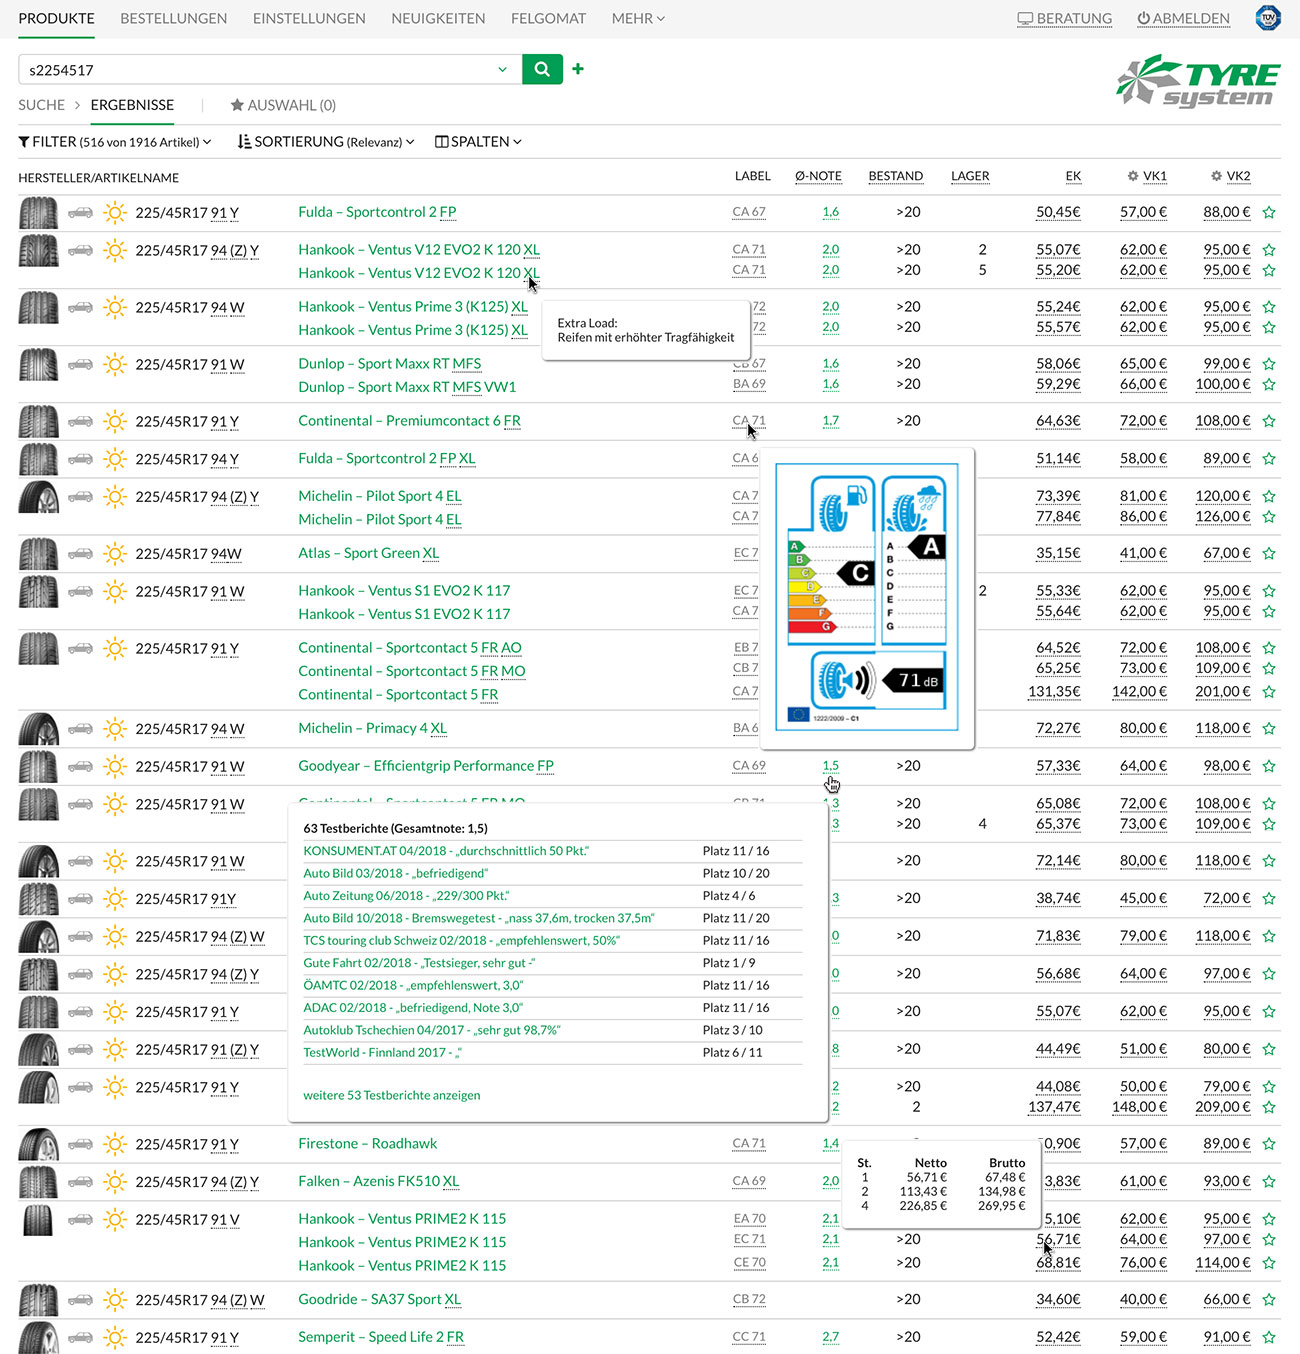 Screenshot der informativen Ergebnisliste in TyreSystem